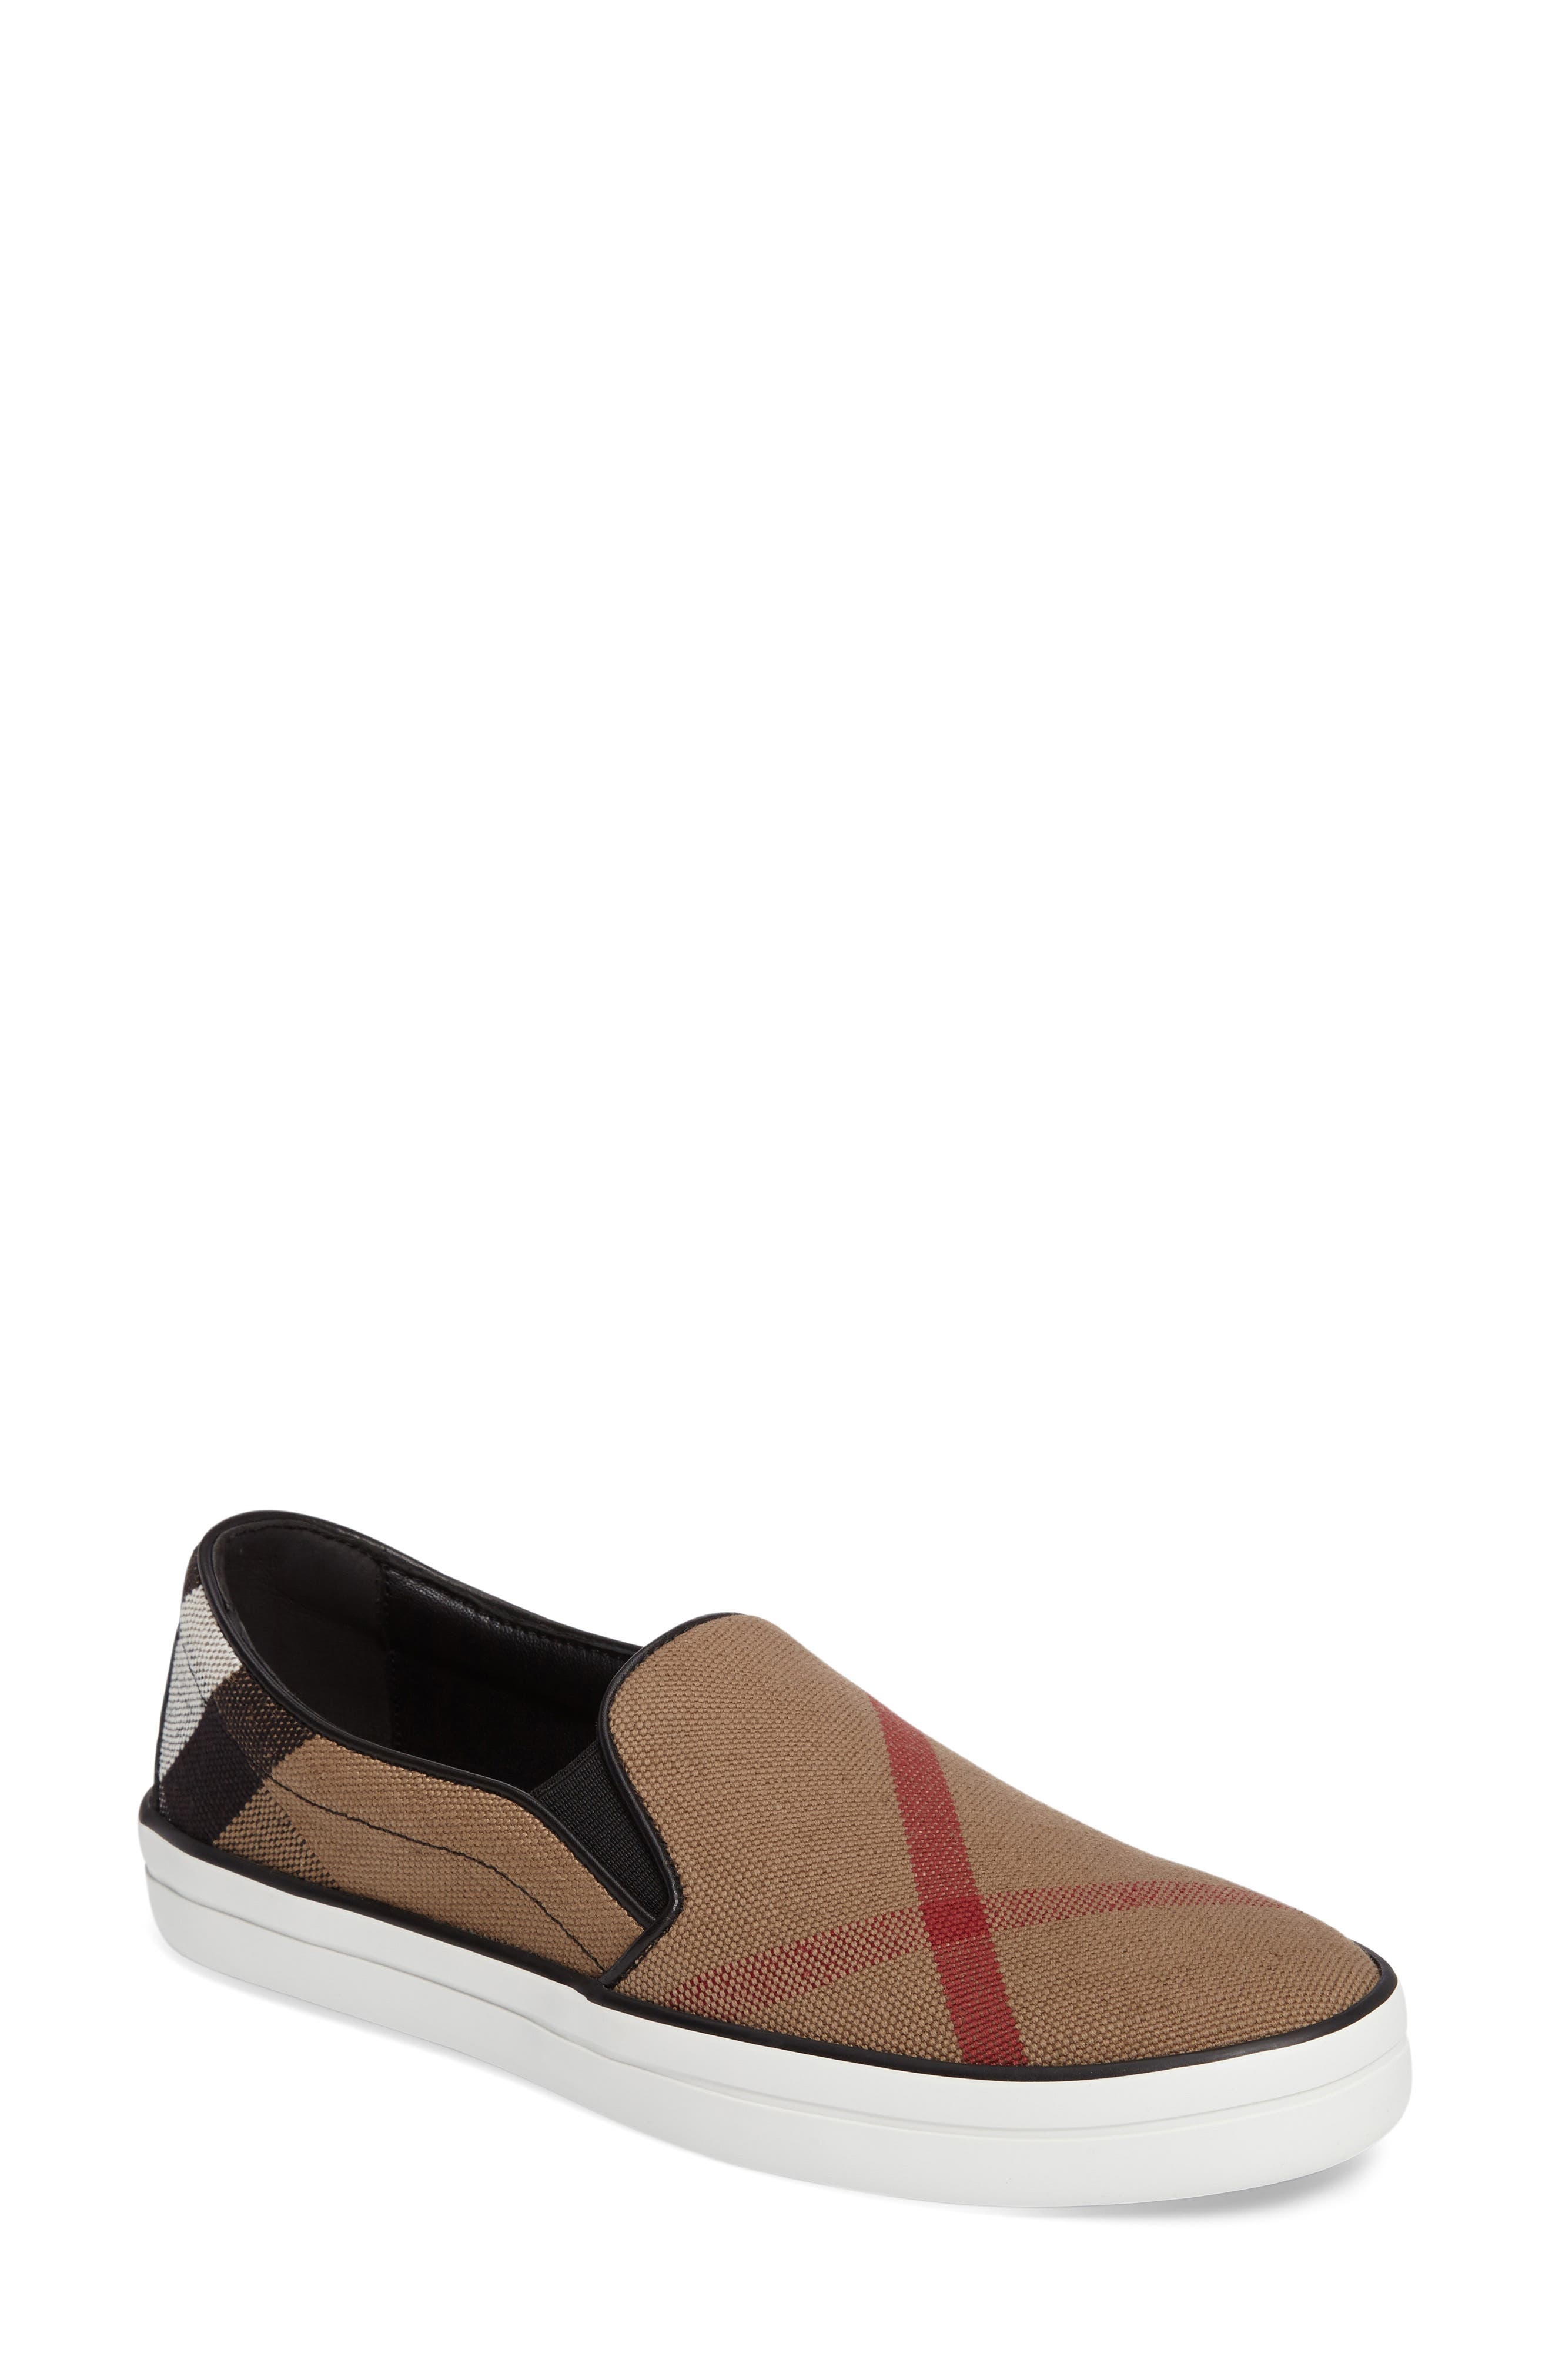 Gauden Slip-On Sneaker,                         Main,                         color,